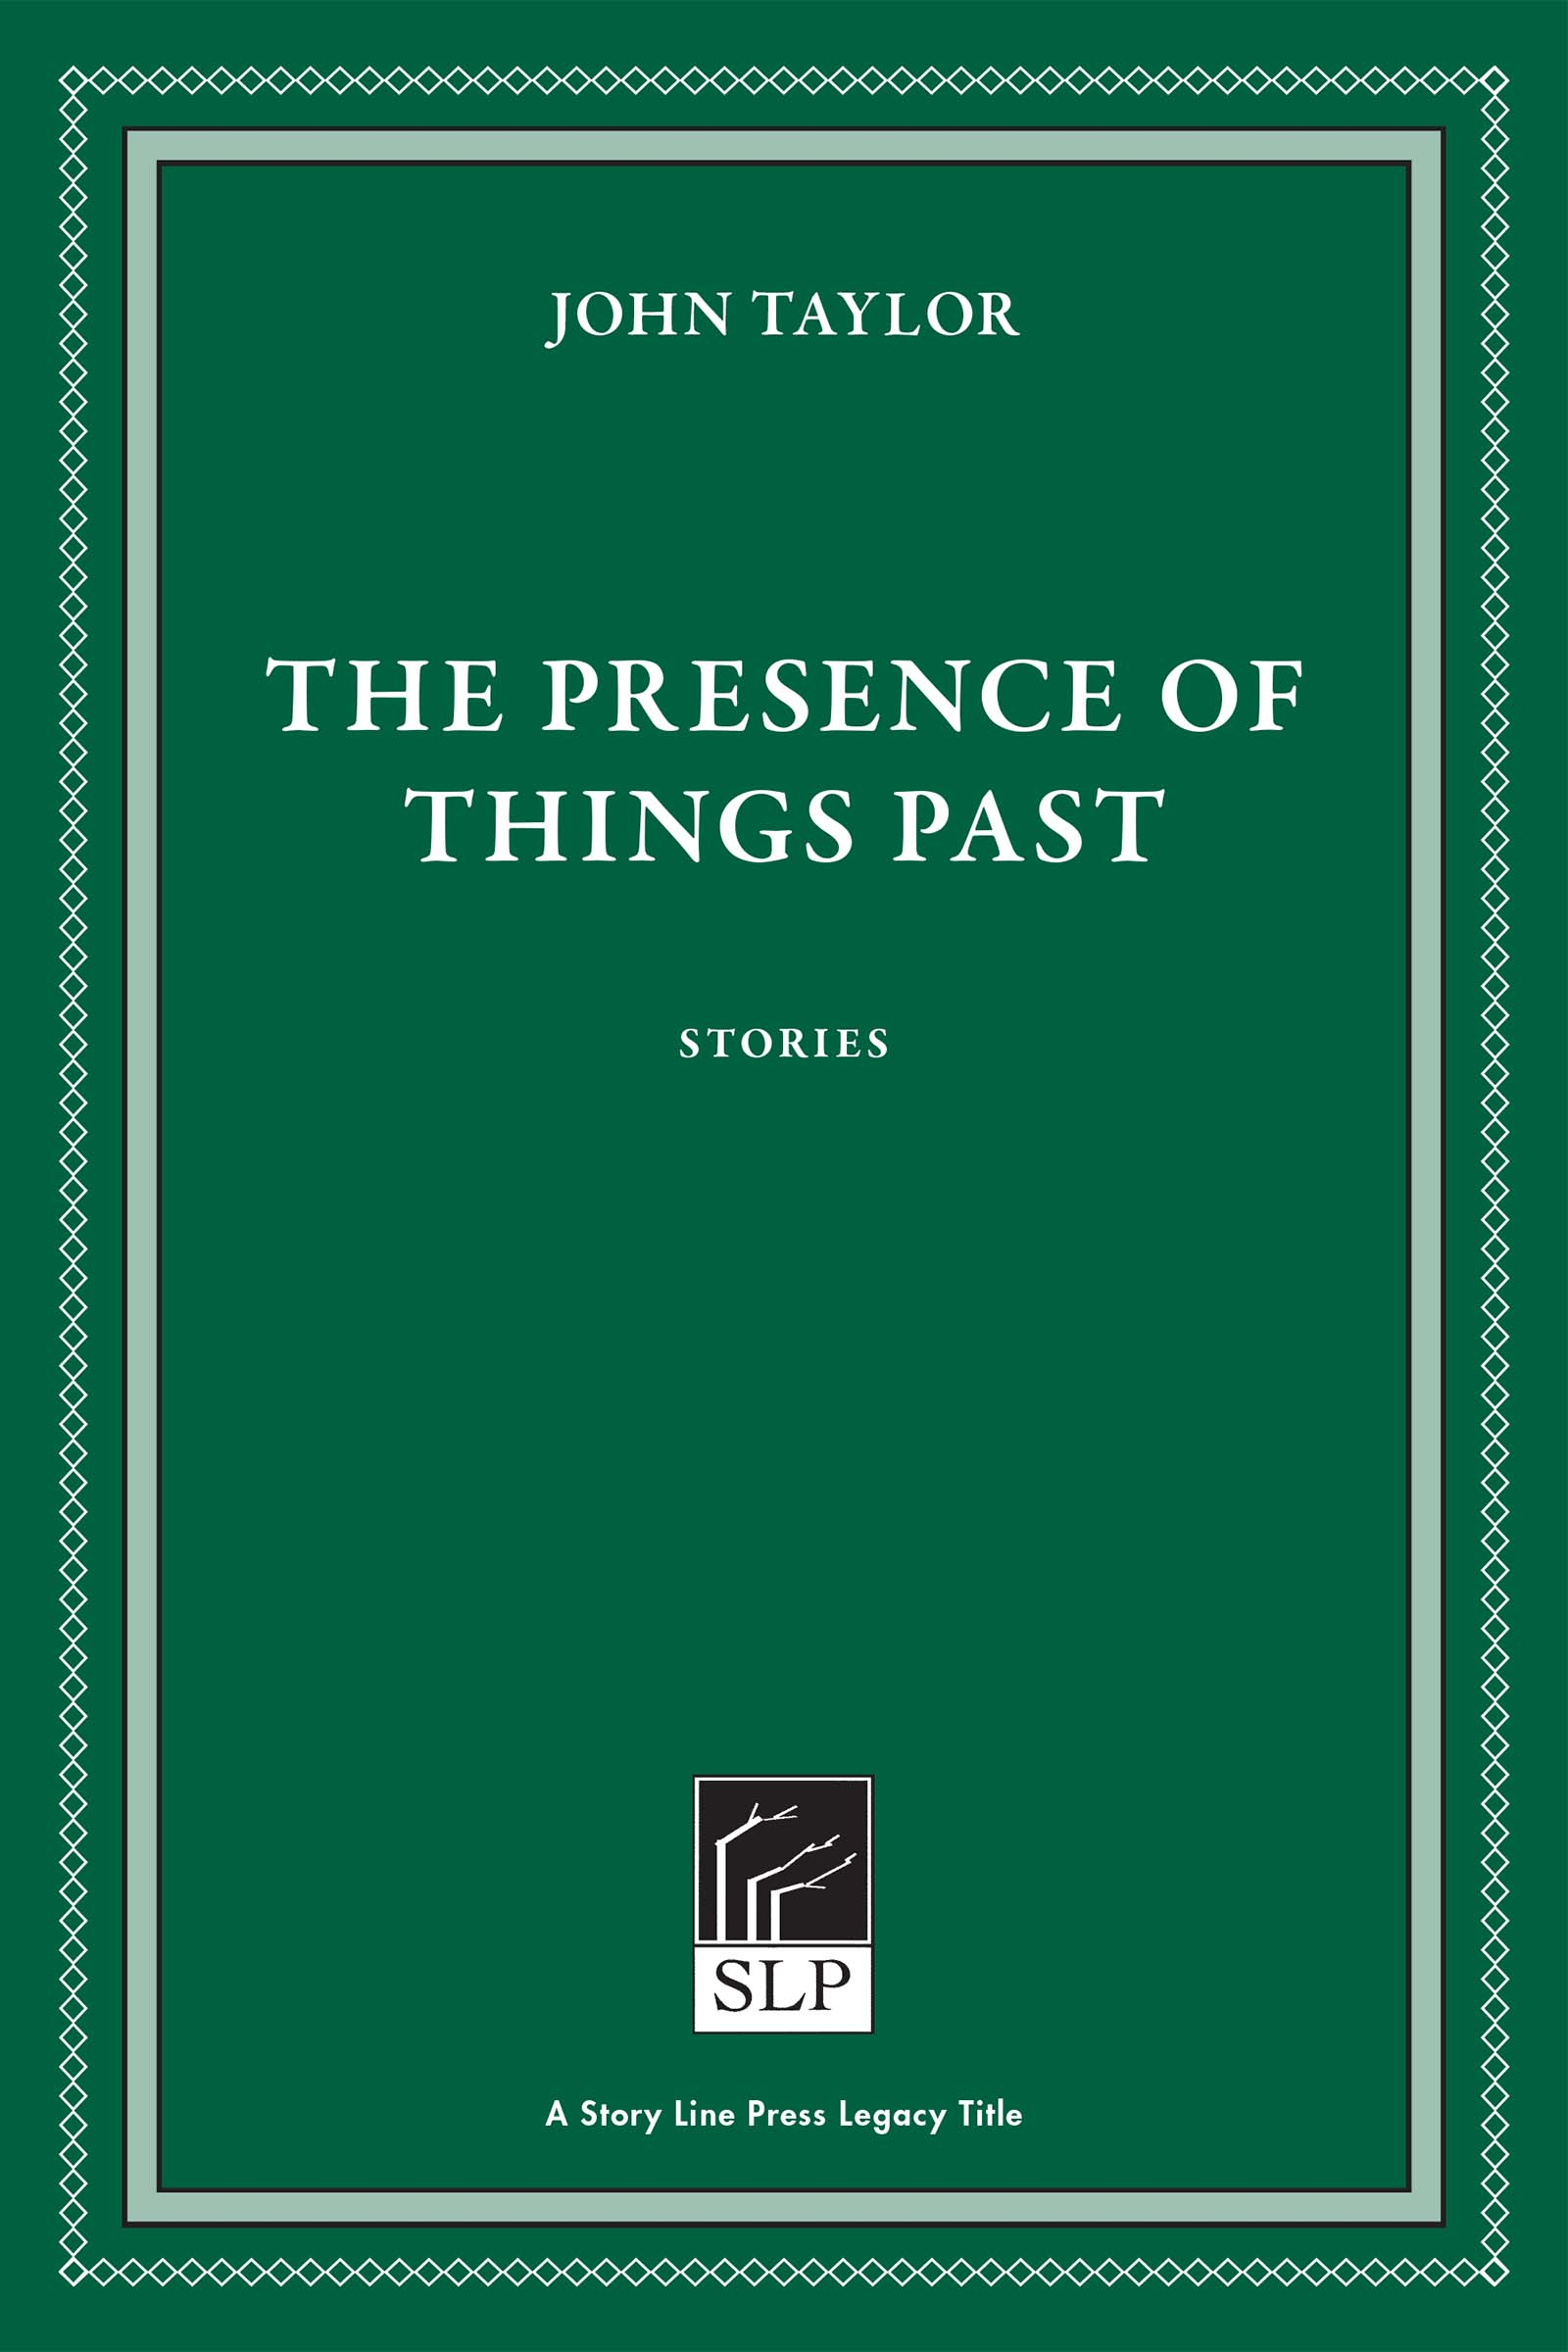 Story Line Press legacy tittle, John Taylor The Presence of Things Past Stories, white script text against emerald green background.